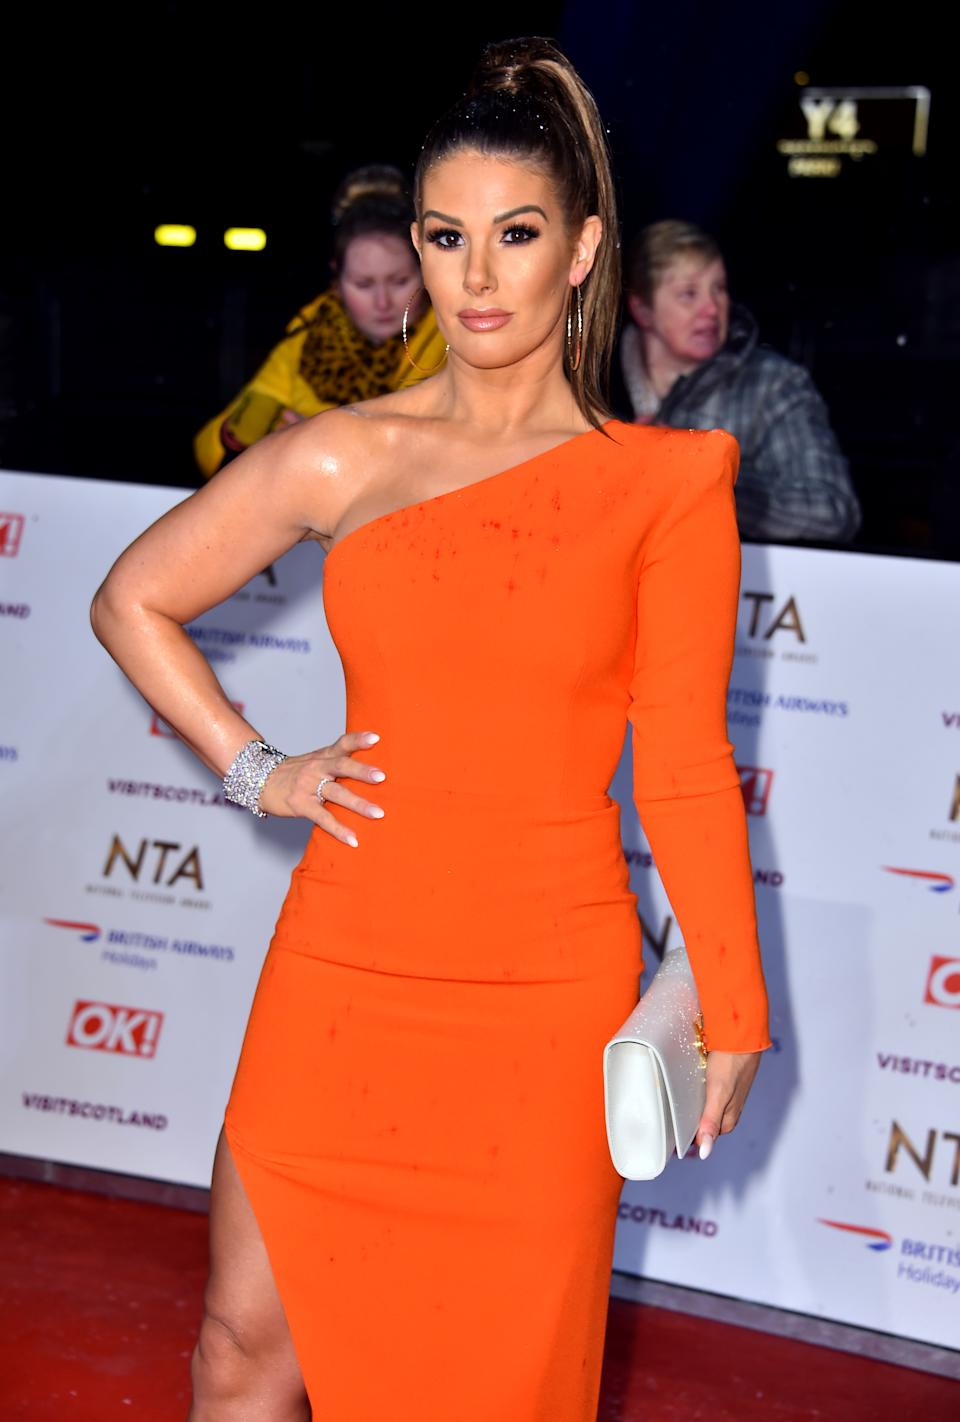 Rebekah Vardy attending the National Television Awards 2019 held at the O2 Arena, London. (Photo by Matt Crossick/PA Images via Getty Images)